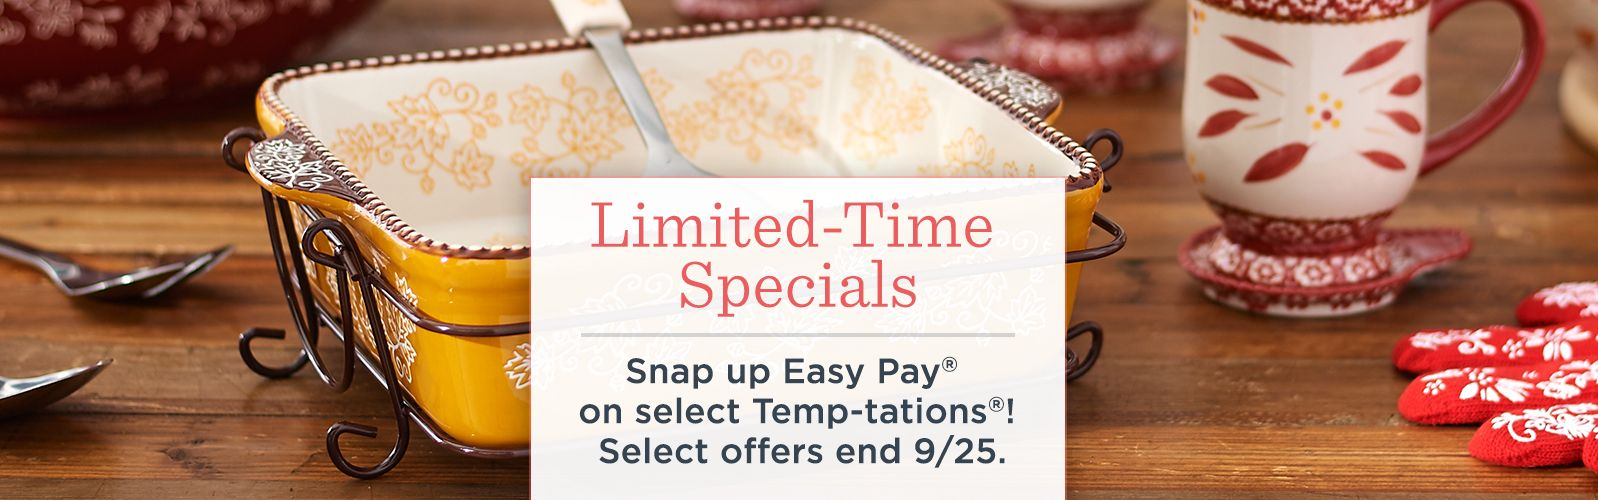 Limited-Time Specials - Snap up Easy Pay® on select Temp-tations®! Select offers end 9/25.